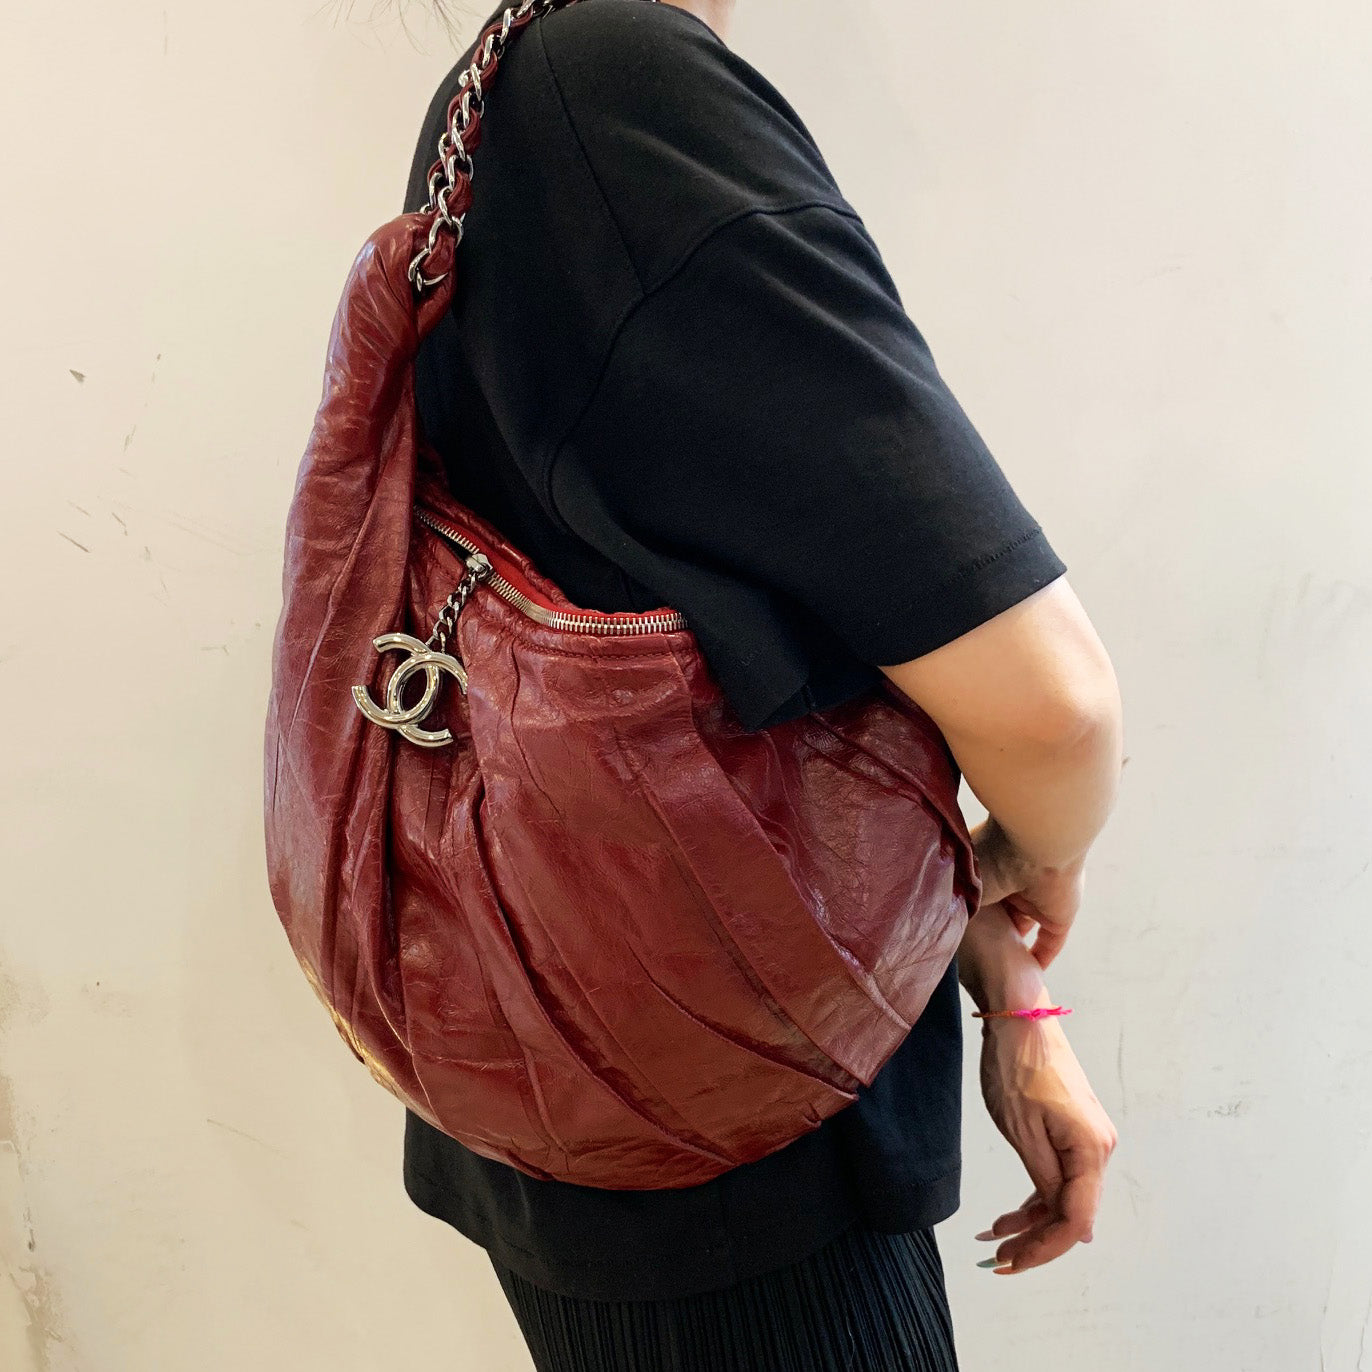 Chanel Maroon Patent Leather Pleated Shoulder Bag